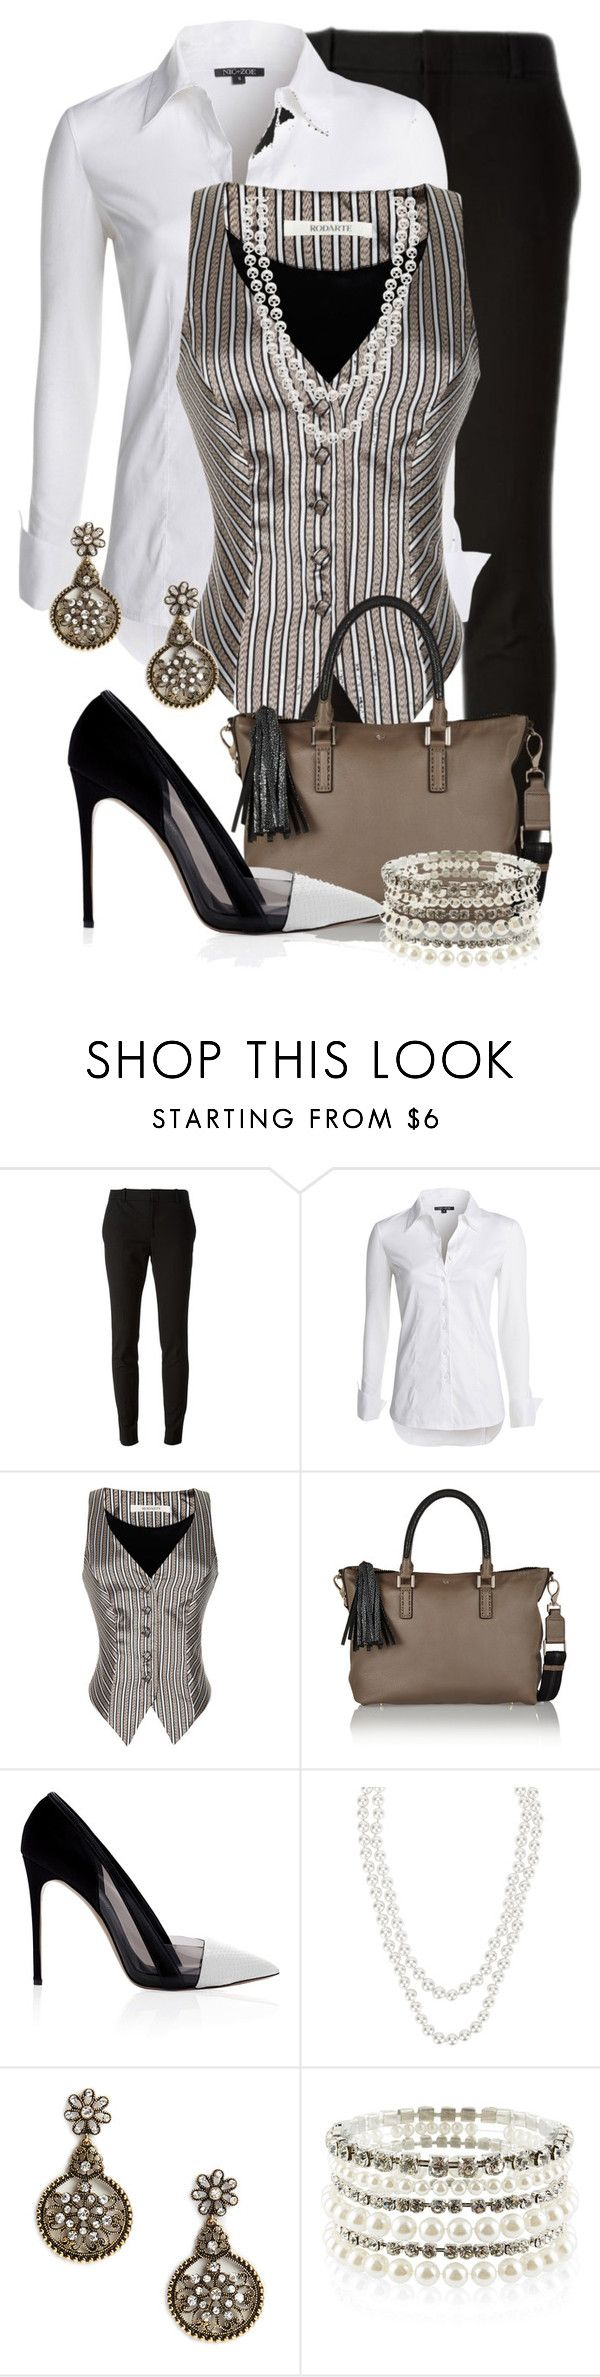 """Vested Interest"" by jennifernoriega ❤ liked on Polyvore featuring Gucci, NIC+ZOE, Rodarte, Anya Hindmarch, Prabal Gurung, Henri Bendel, Amrita Singh and Accessorize"